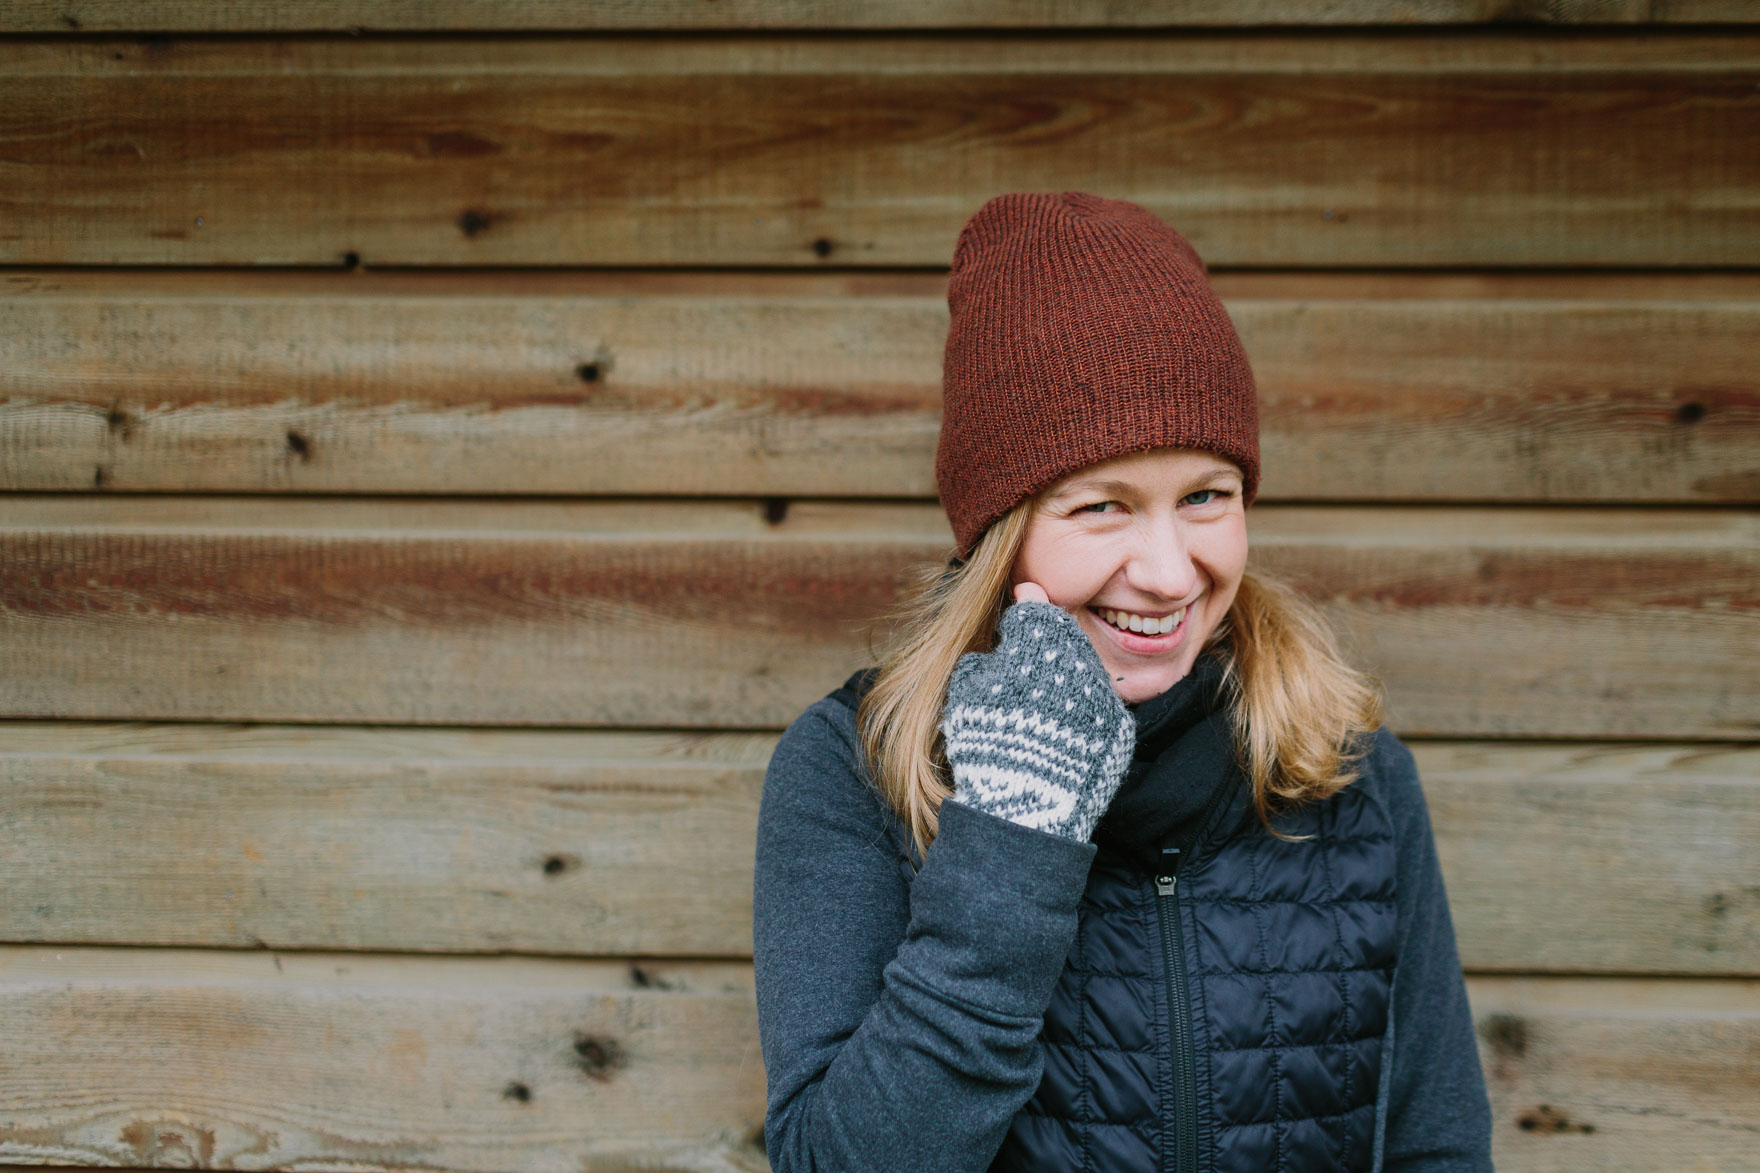 Pacific Northwest Brand Adventure – Photo by Let's Frolic Together